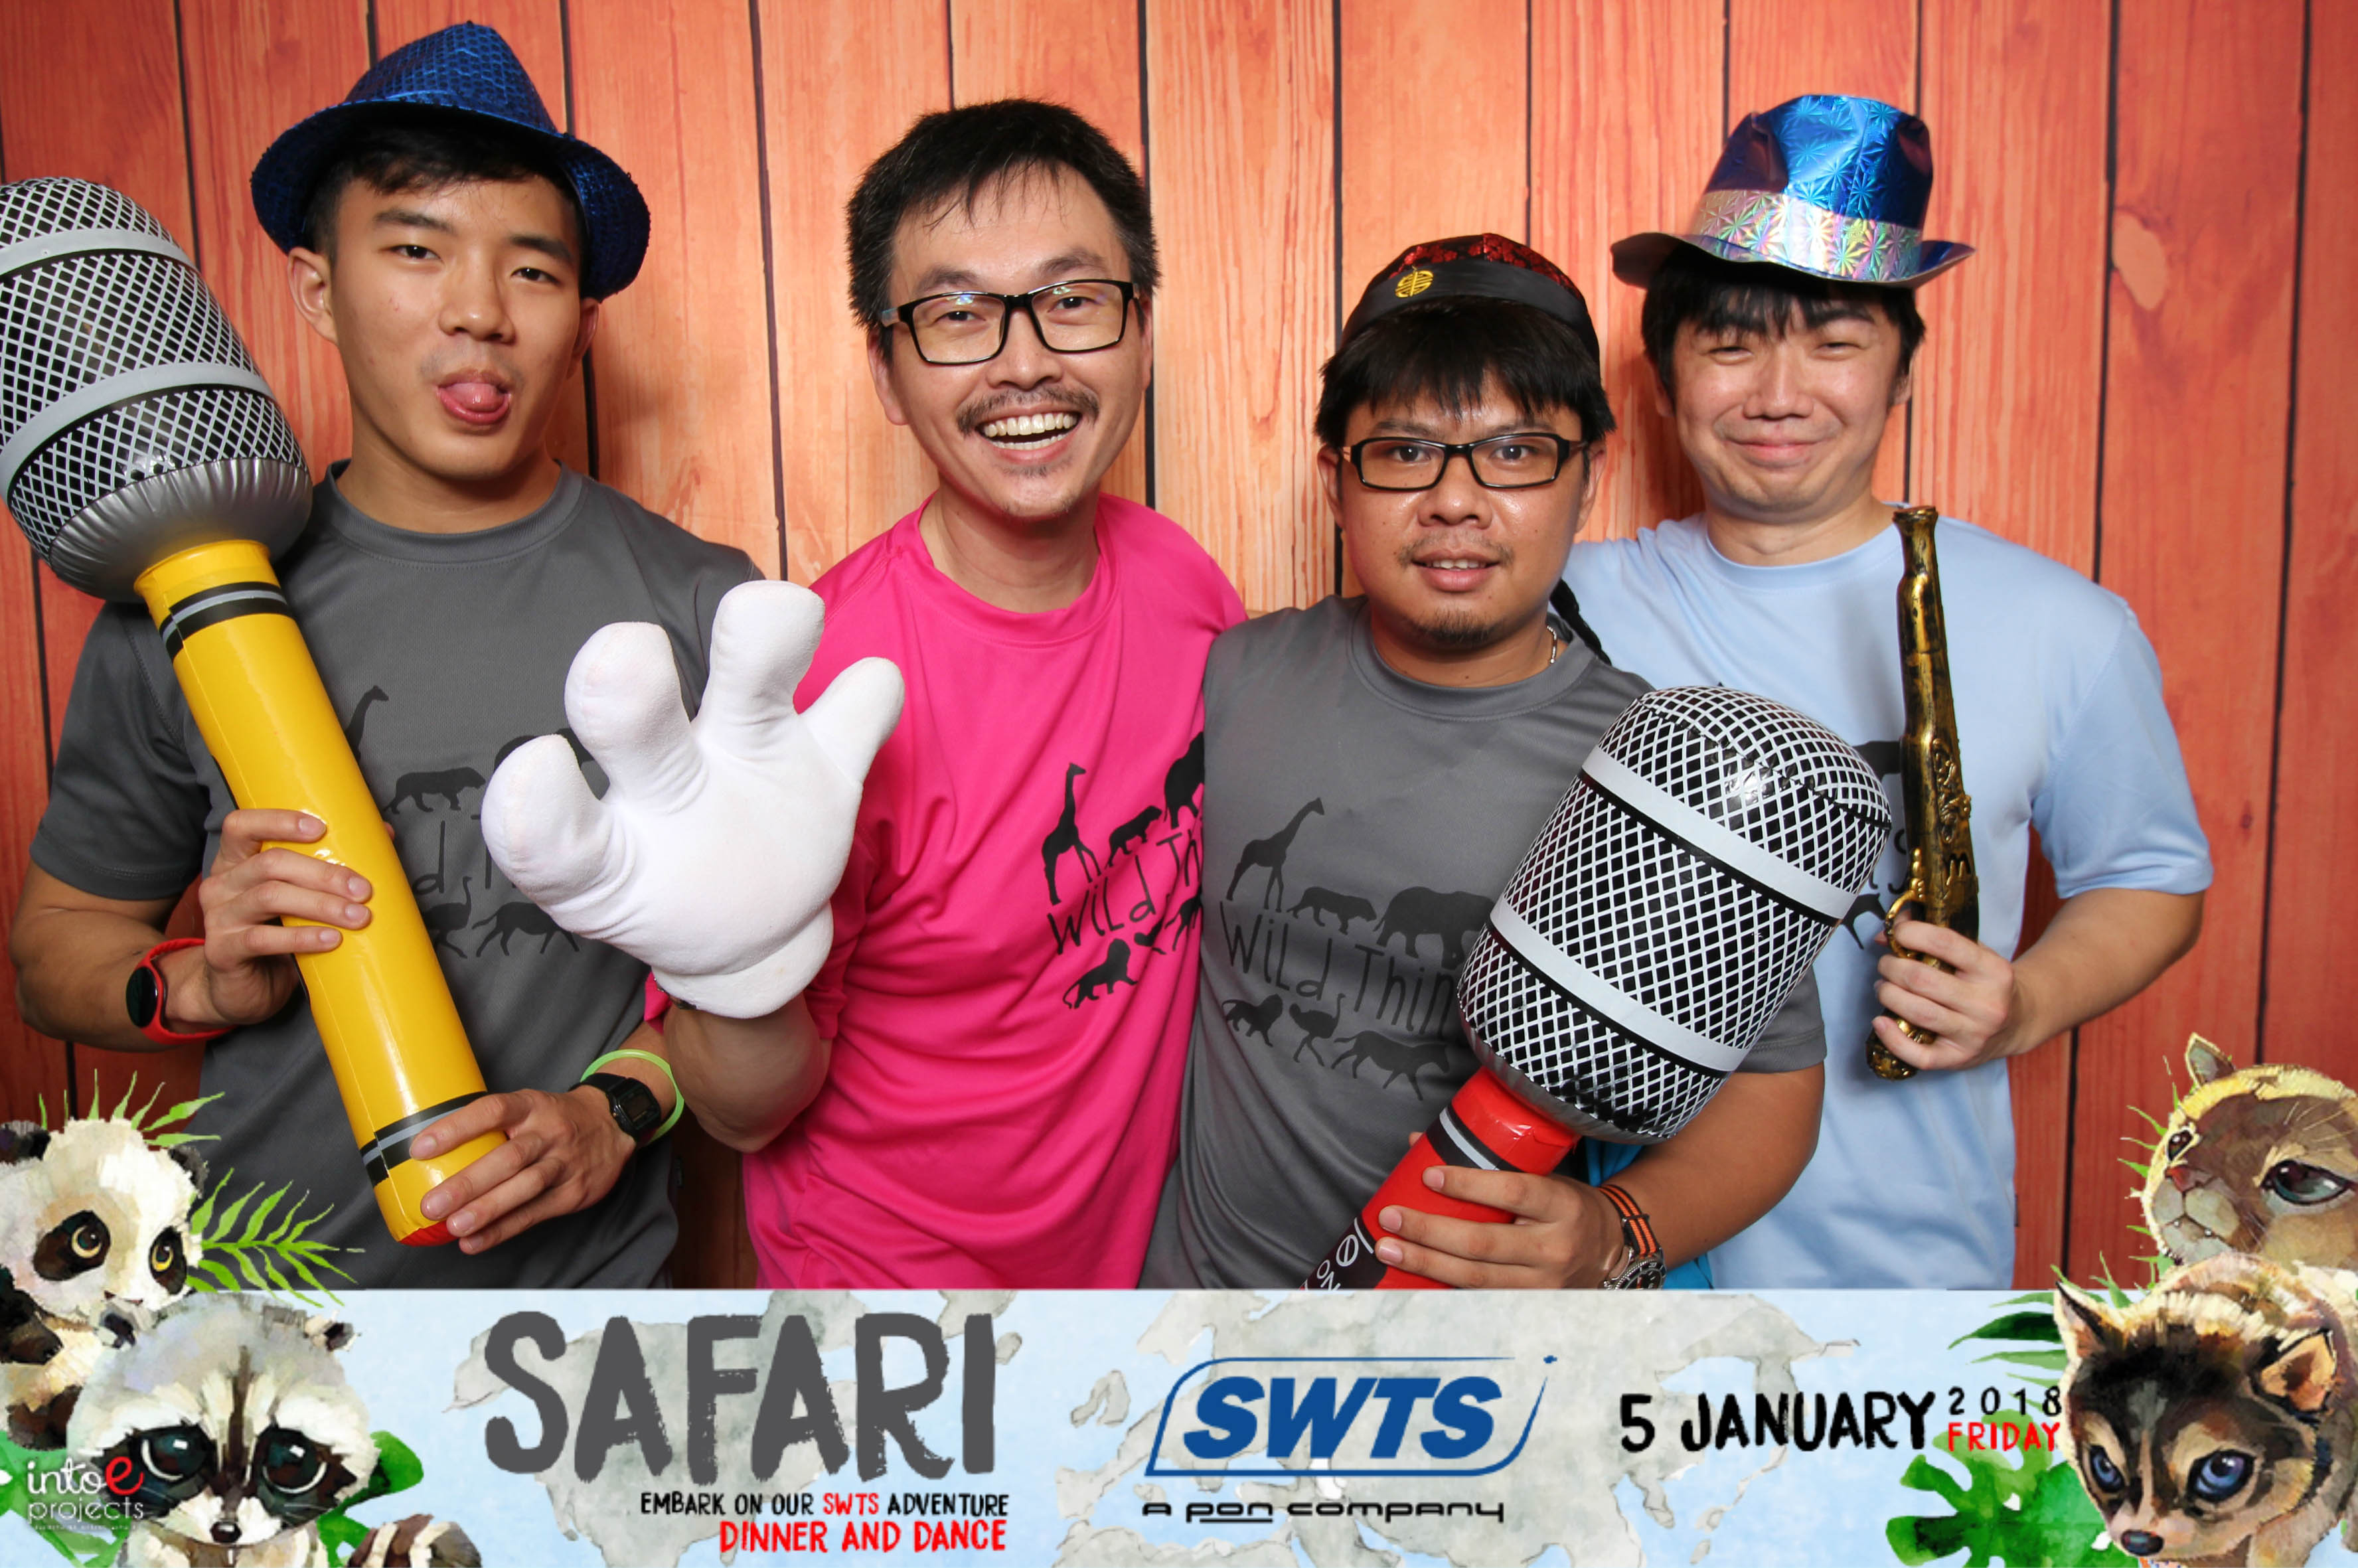 Photo Booth Singapore 0501 (27 of 52)